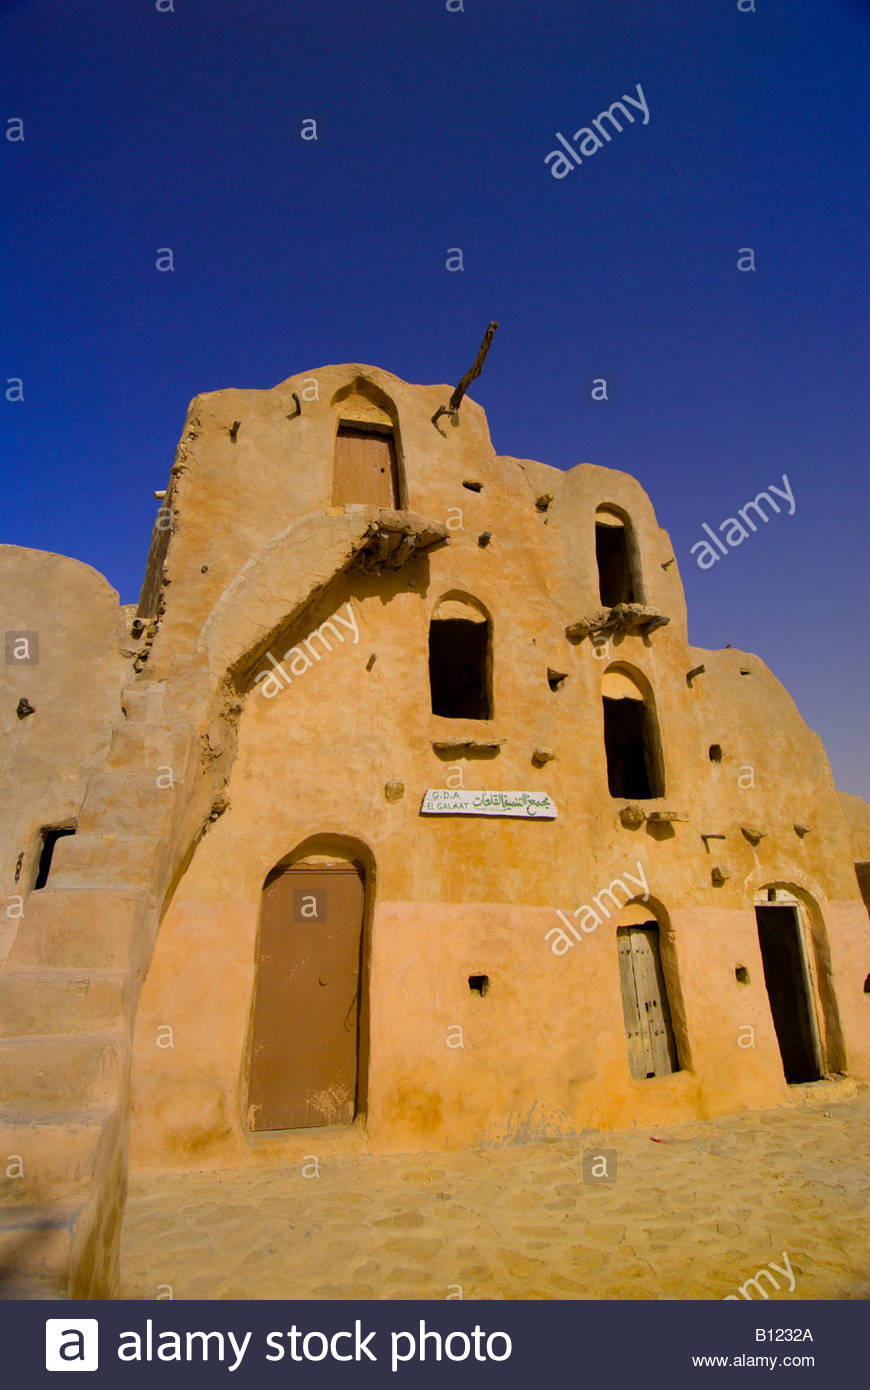 Ghorfas in Ksar Ouled Soltane, Tunisia Stock Photo